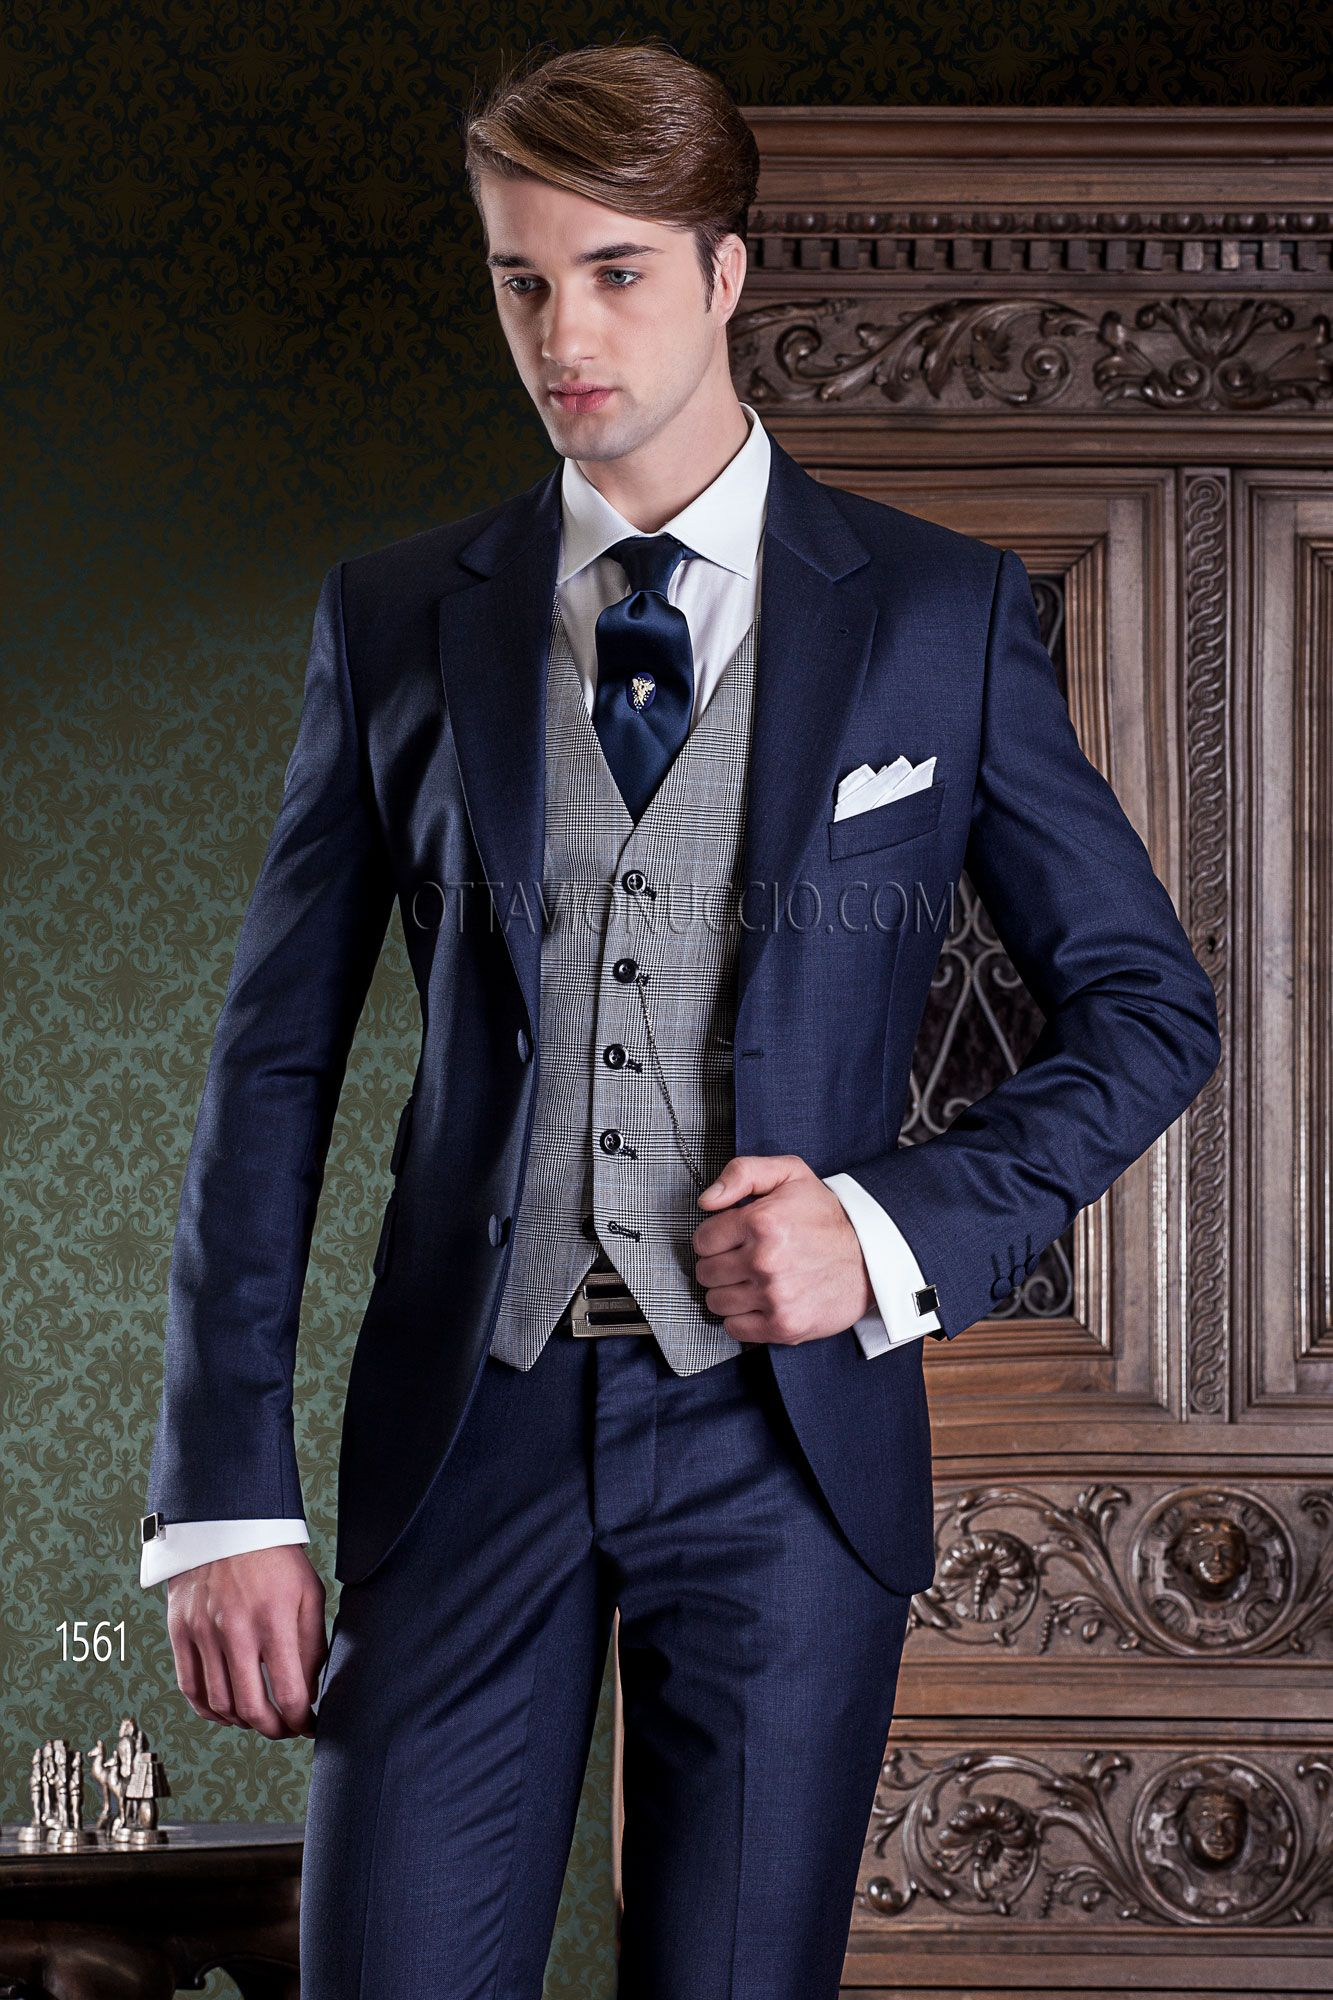 ae6d76f54b5d 2 buttons dark blue formal suit in pure wool with ticket pocket and Prince  of Wales vest  bespoke  madeinitaly  weddingsuit  groomsuit  weddingtuxedo   groom ...